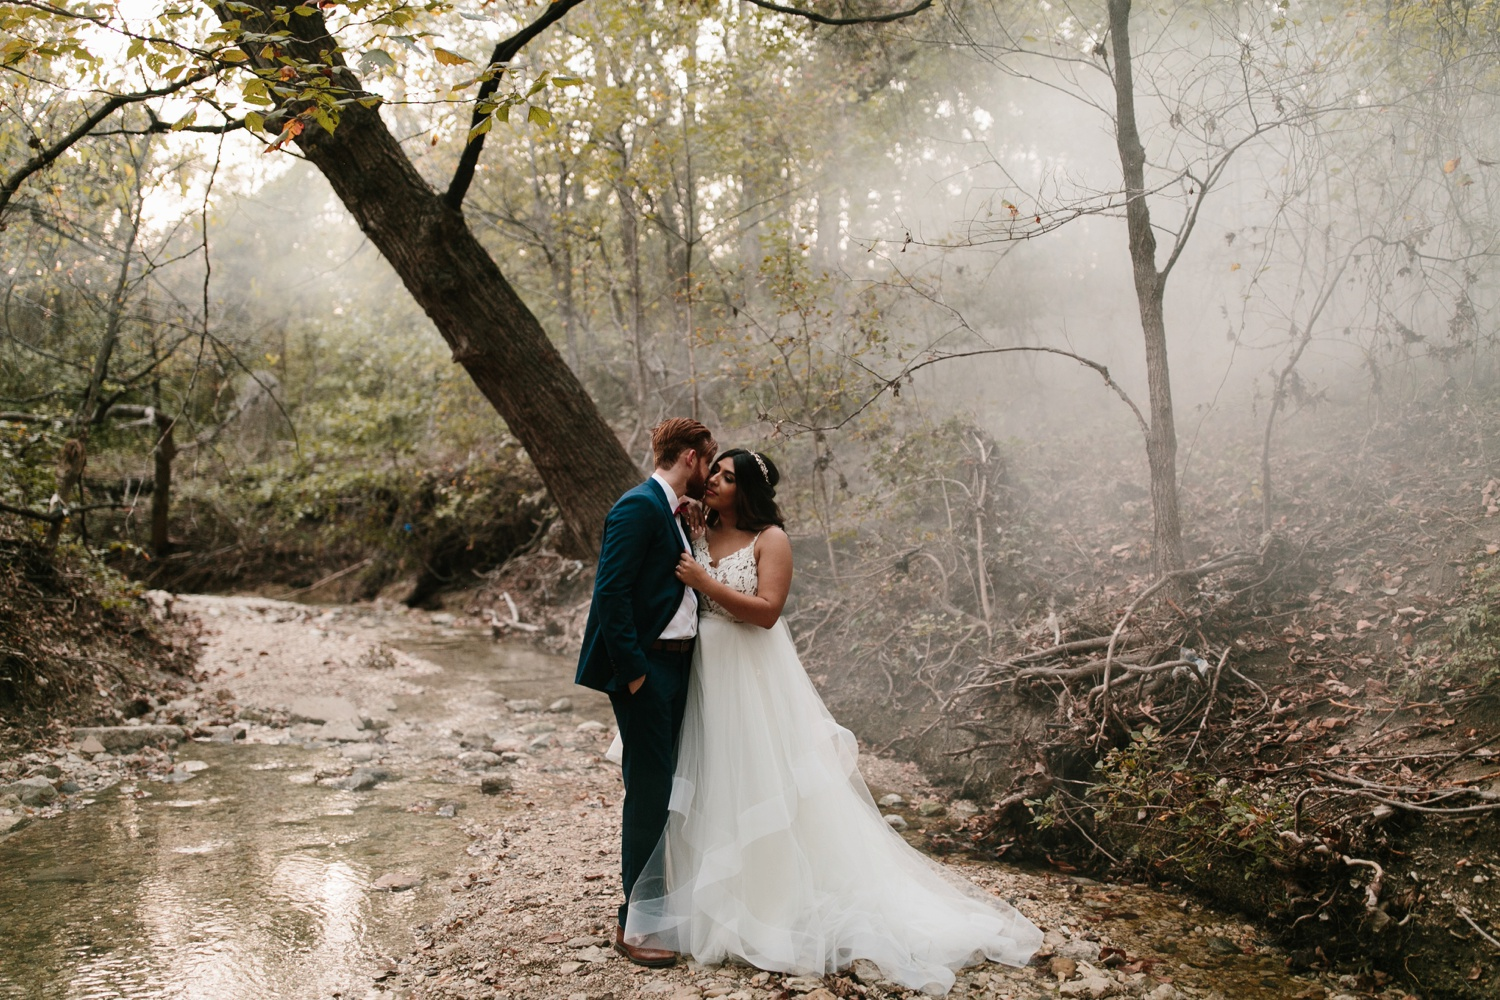 Grant + Lysette | a vibrant, deep burgundy and navy, and mixed metals wedding at Hidden Pines Chapel by North Texas Wedding Photographer Rachel Meagan Photography 256